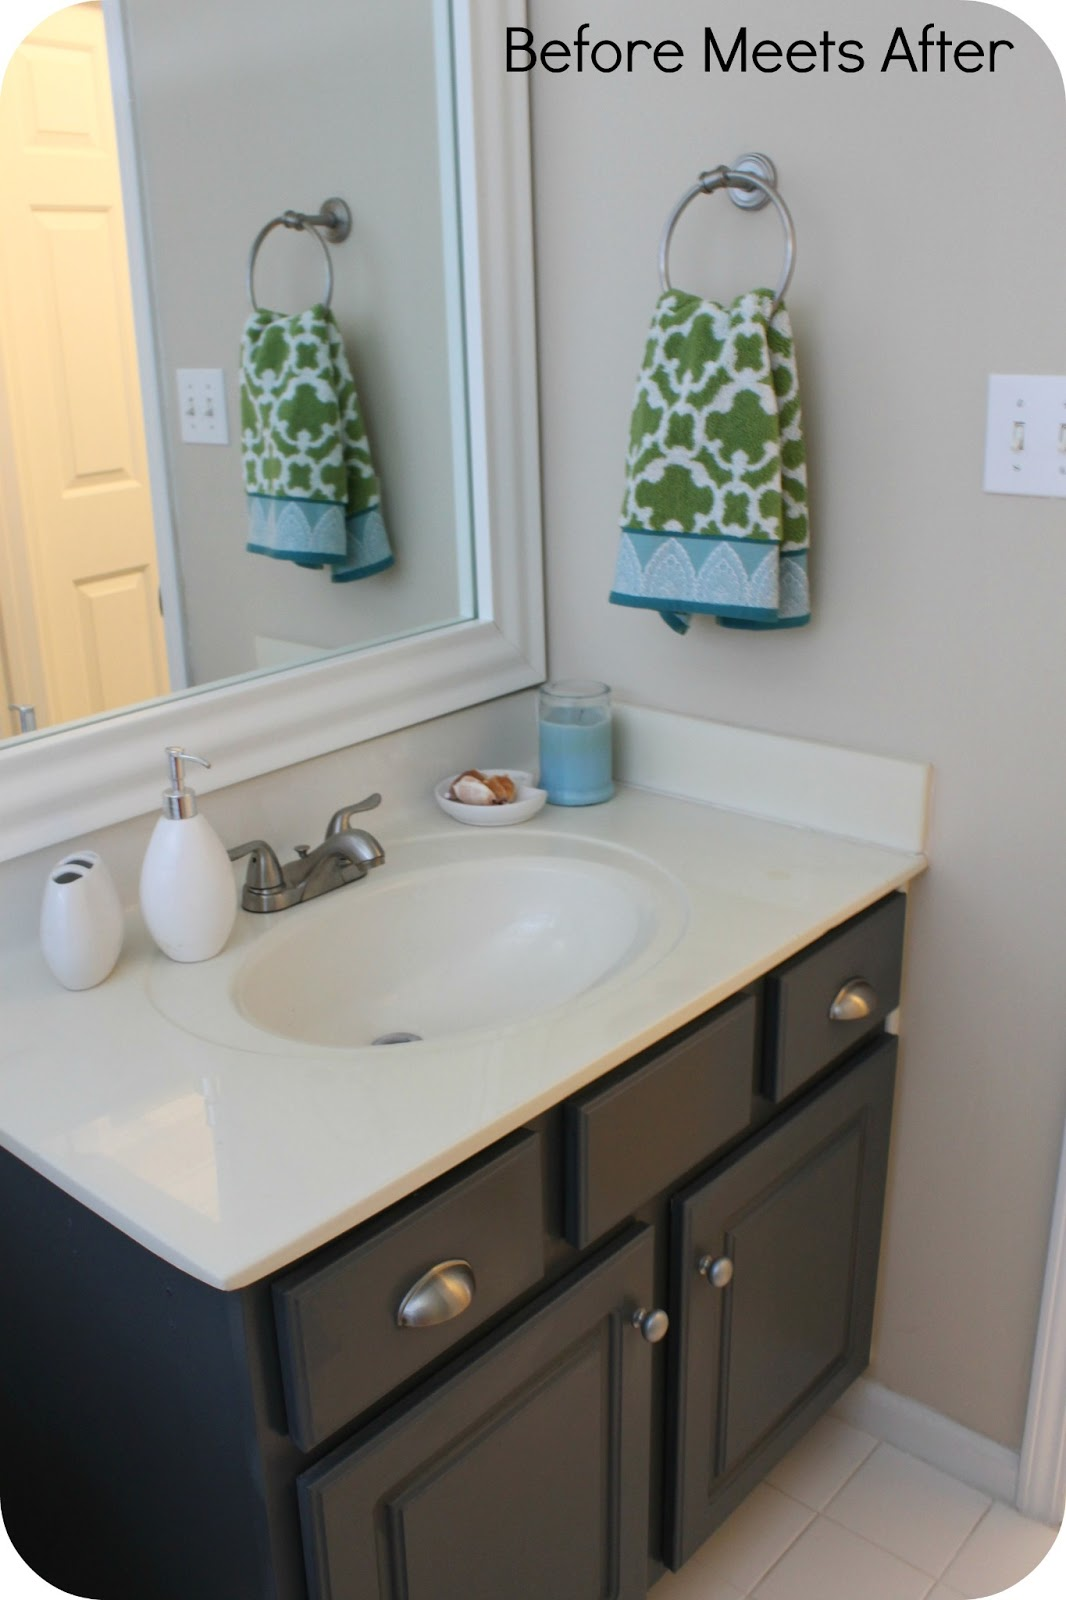 New Bathroom Vanity Makeover  Decor Adventures  640x444  Jpeg